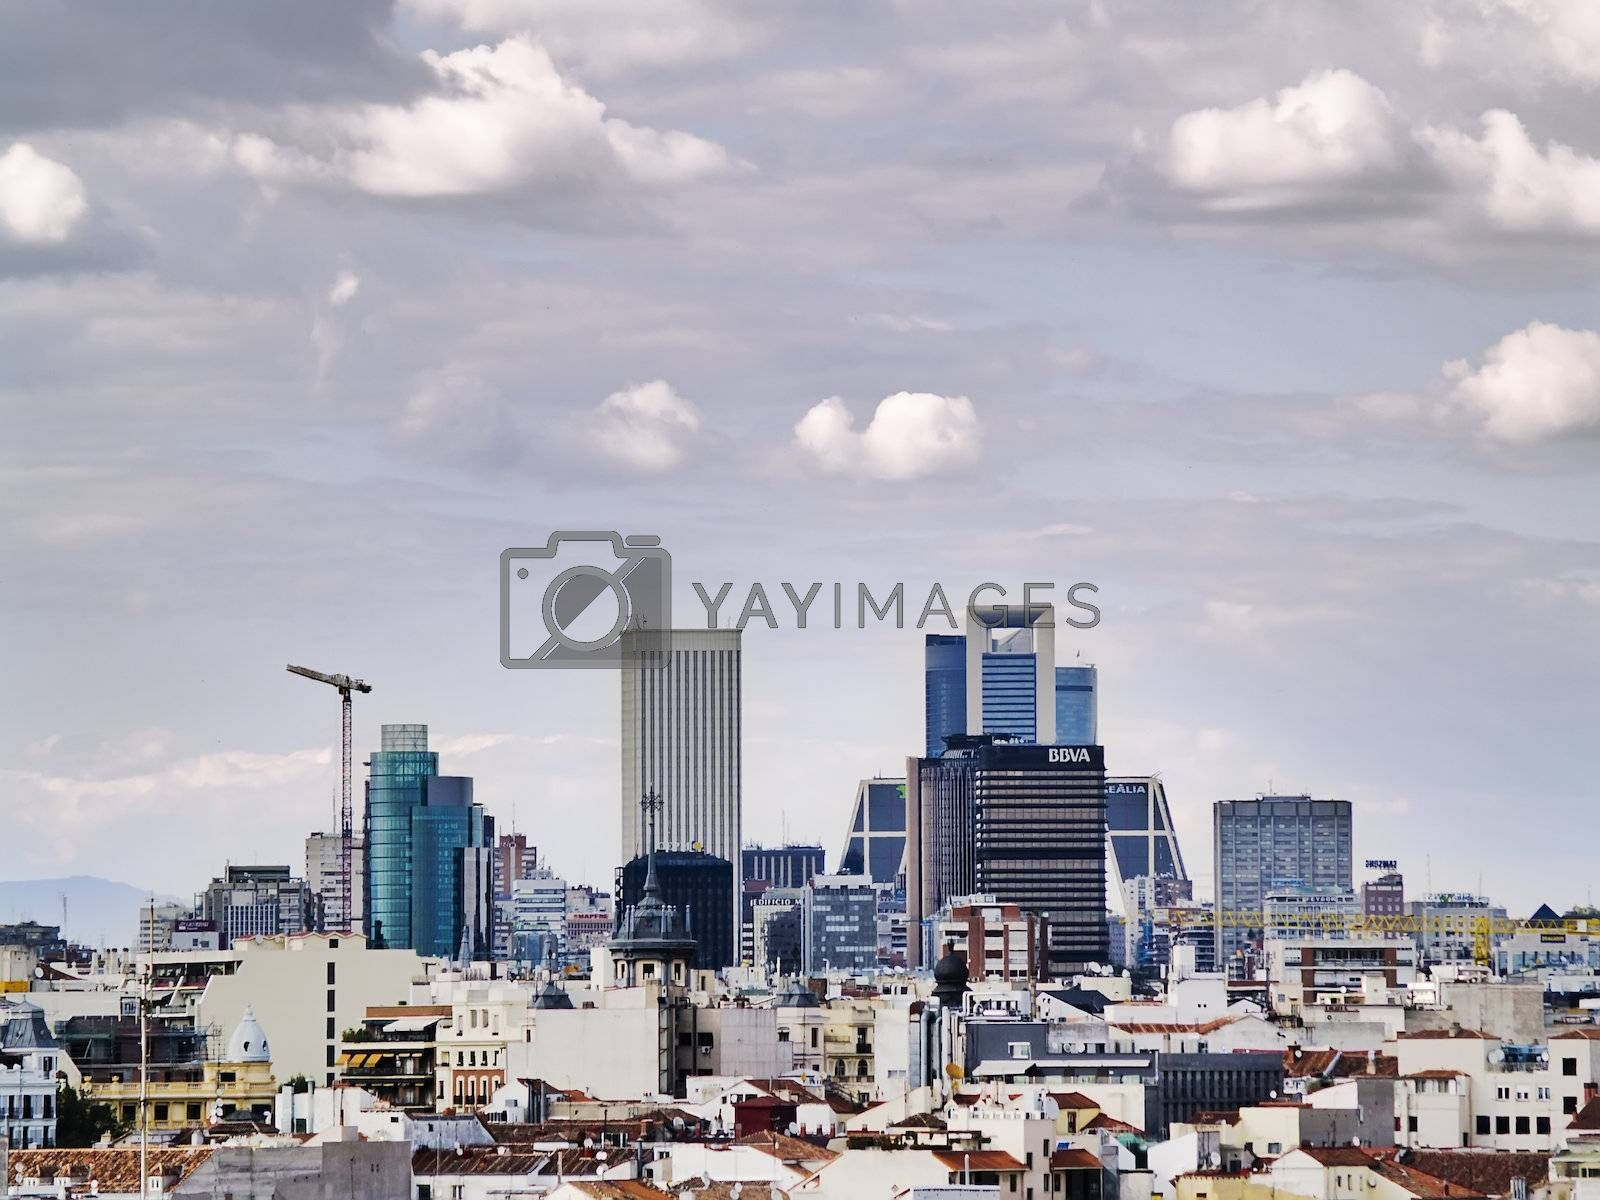 MADRID, SPAIN - MAY 20: Financial sector on 20, 2011 in Madrid, Spain. In 1954 the architect Antonio Perpina organized a financial sector based on the Rockefeller Centre of NYC, now the office skycrapers have expanded at the north of Madrid